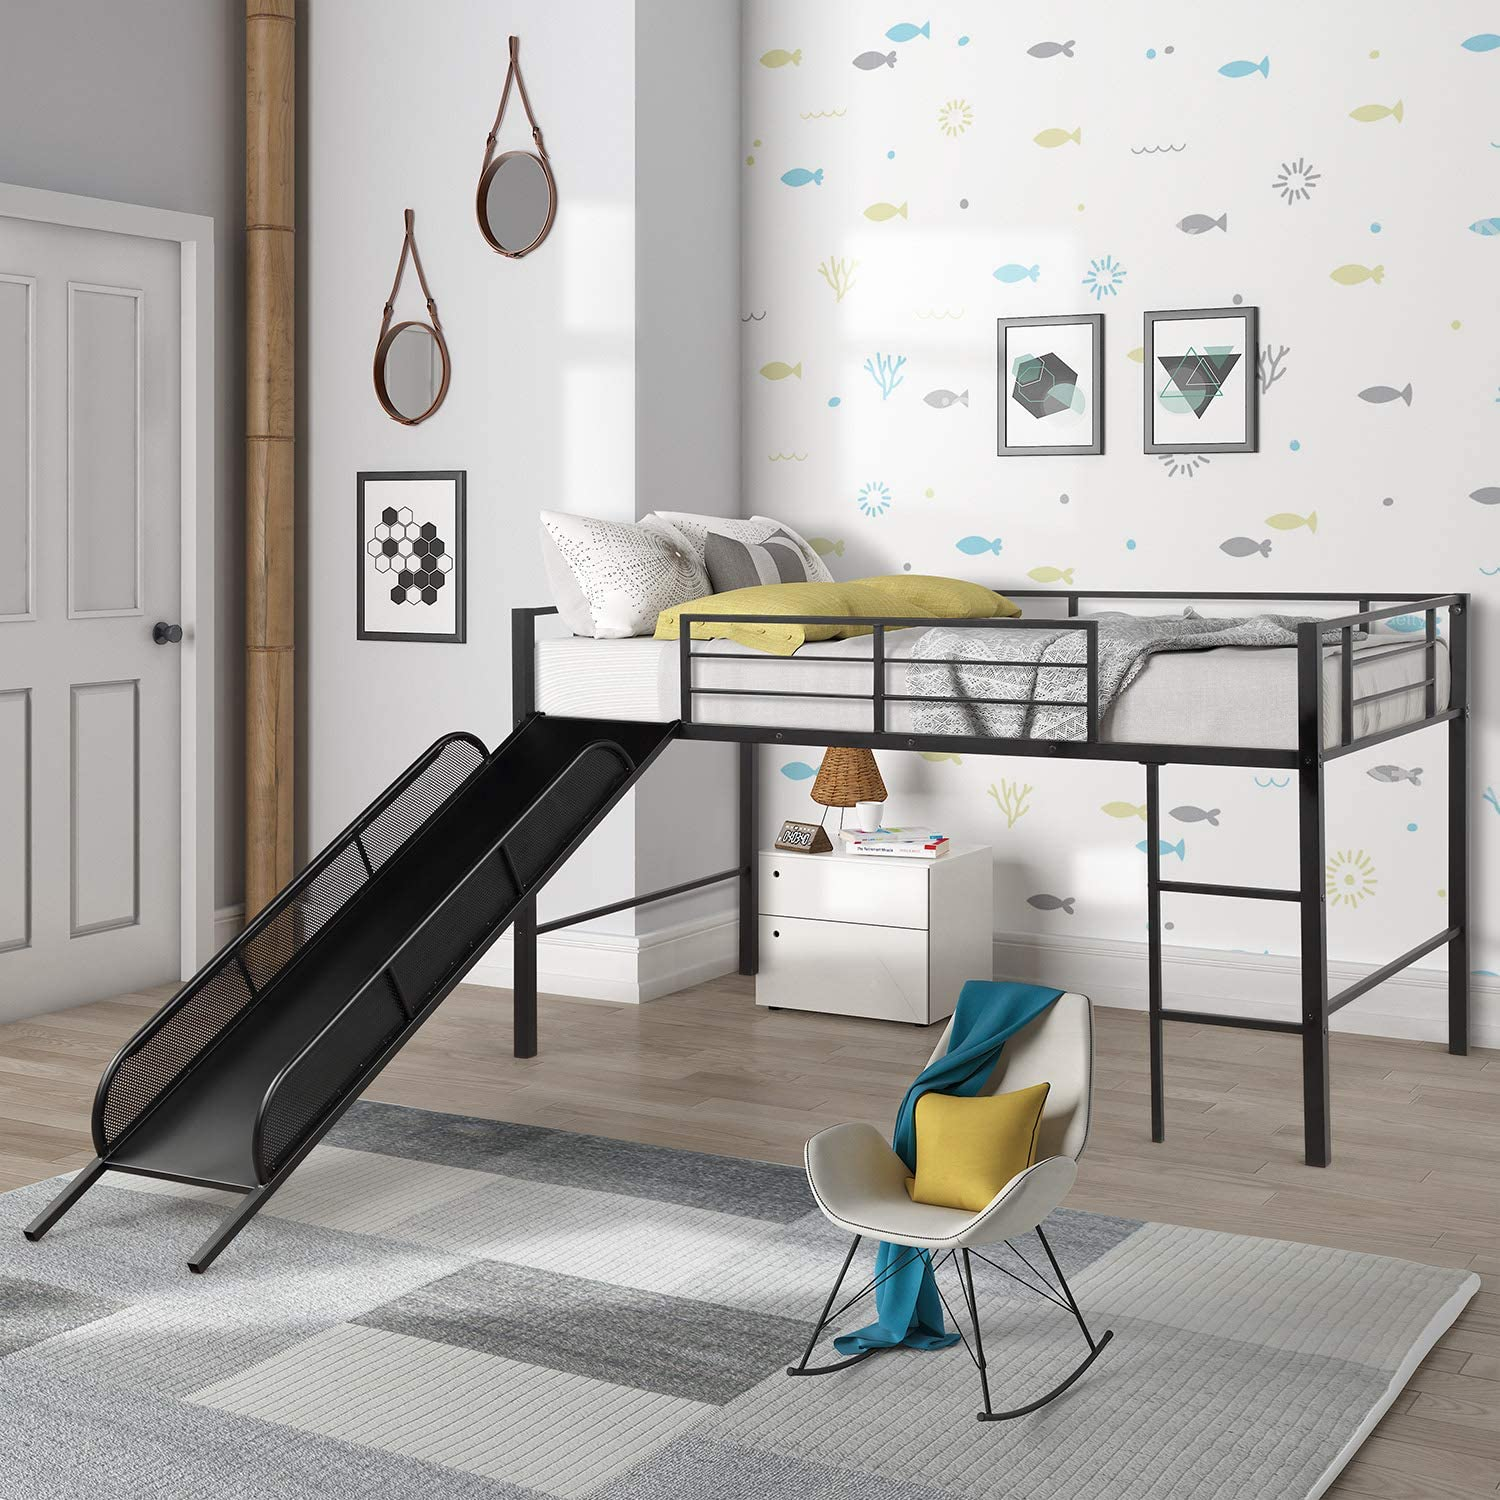 G-house Twin Metal Loft Bed with Slide Low loft Strong Slide No Box Spring Needed Bed Frame for Child Black